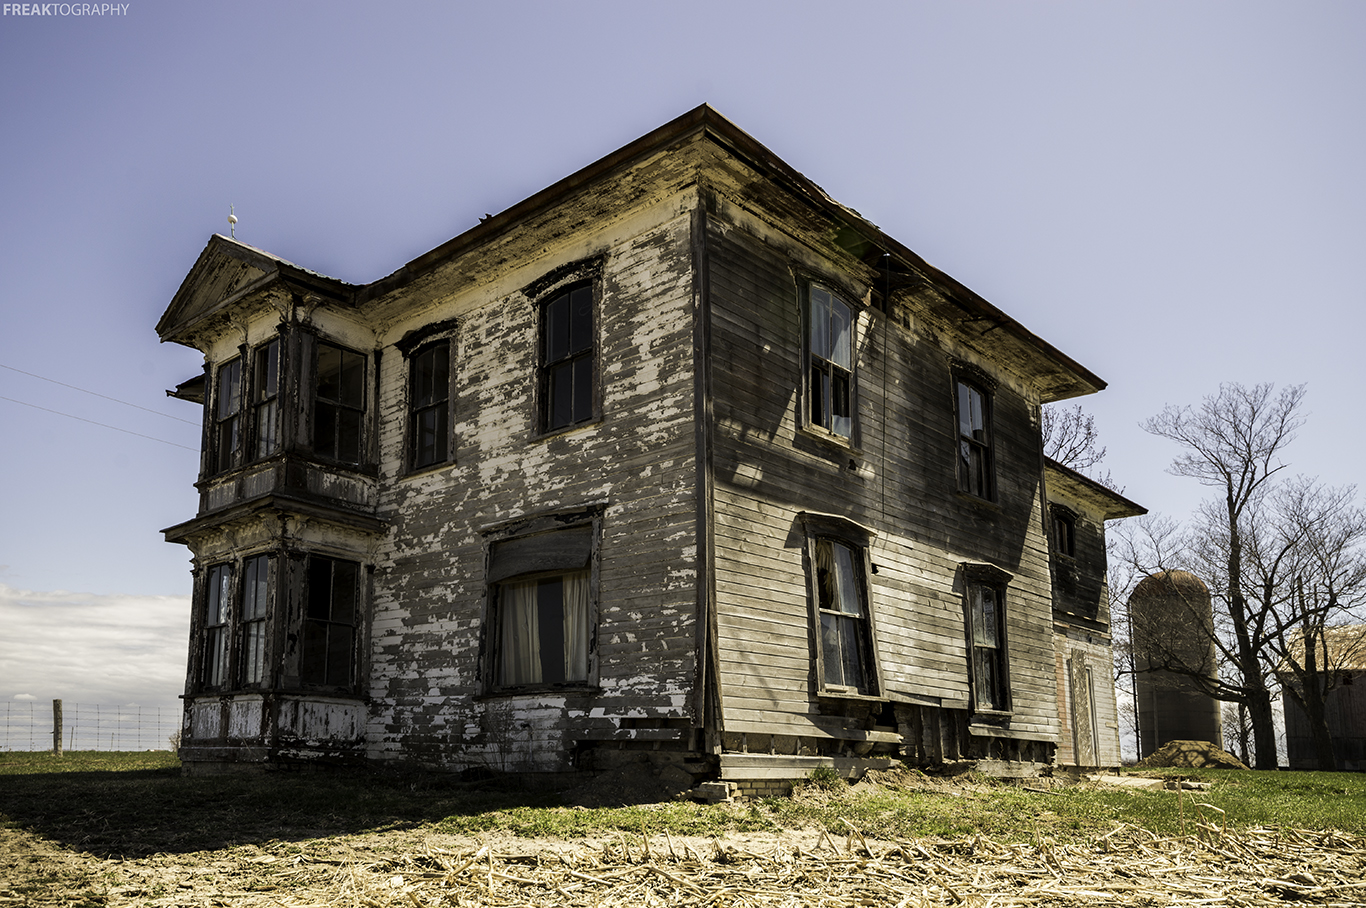 Creepy Abandoned Houses in Ontario